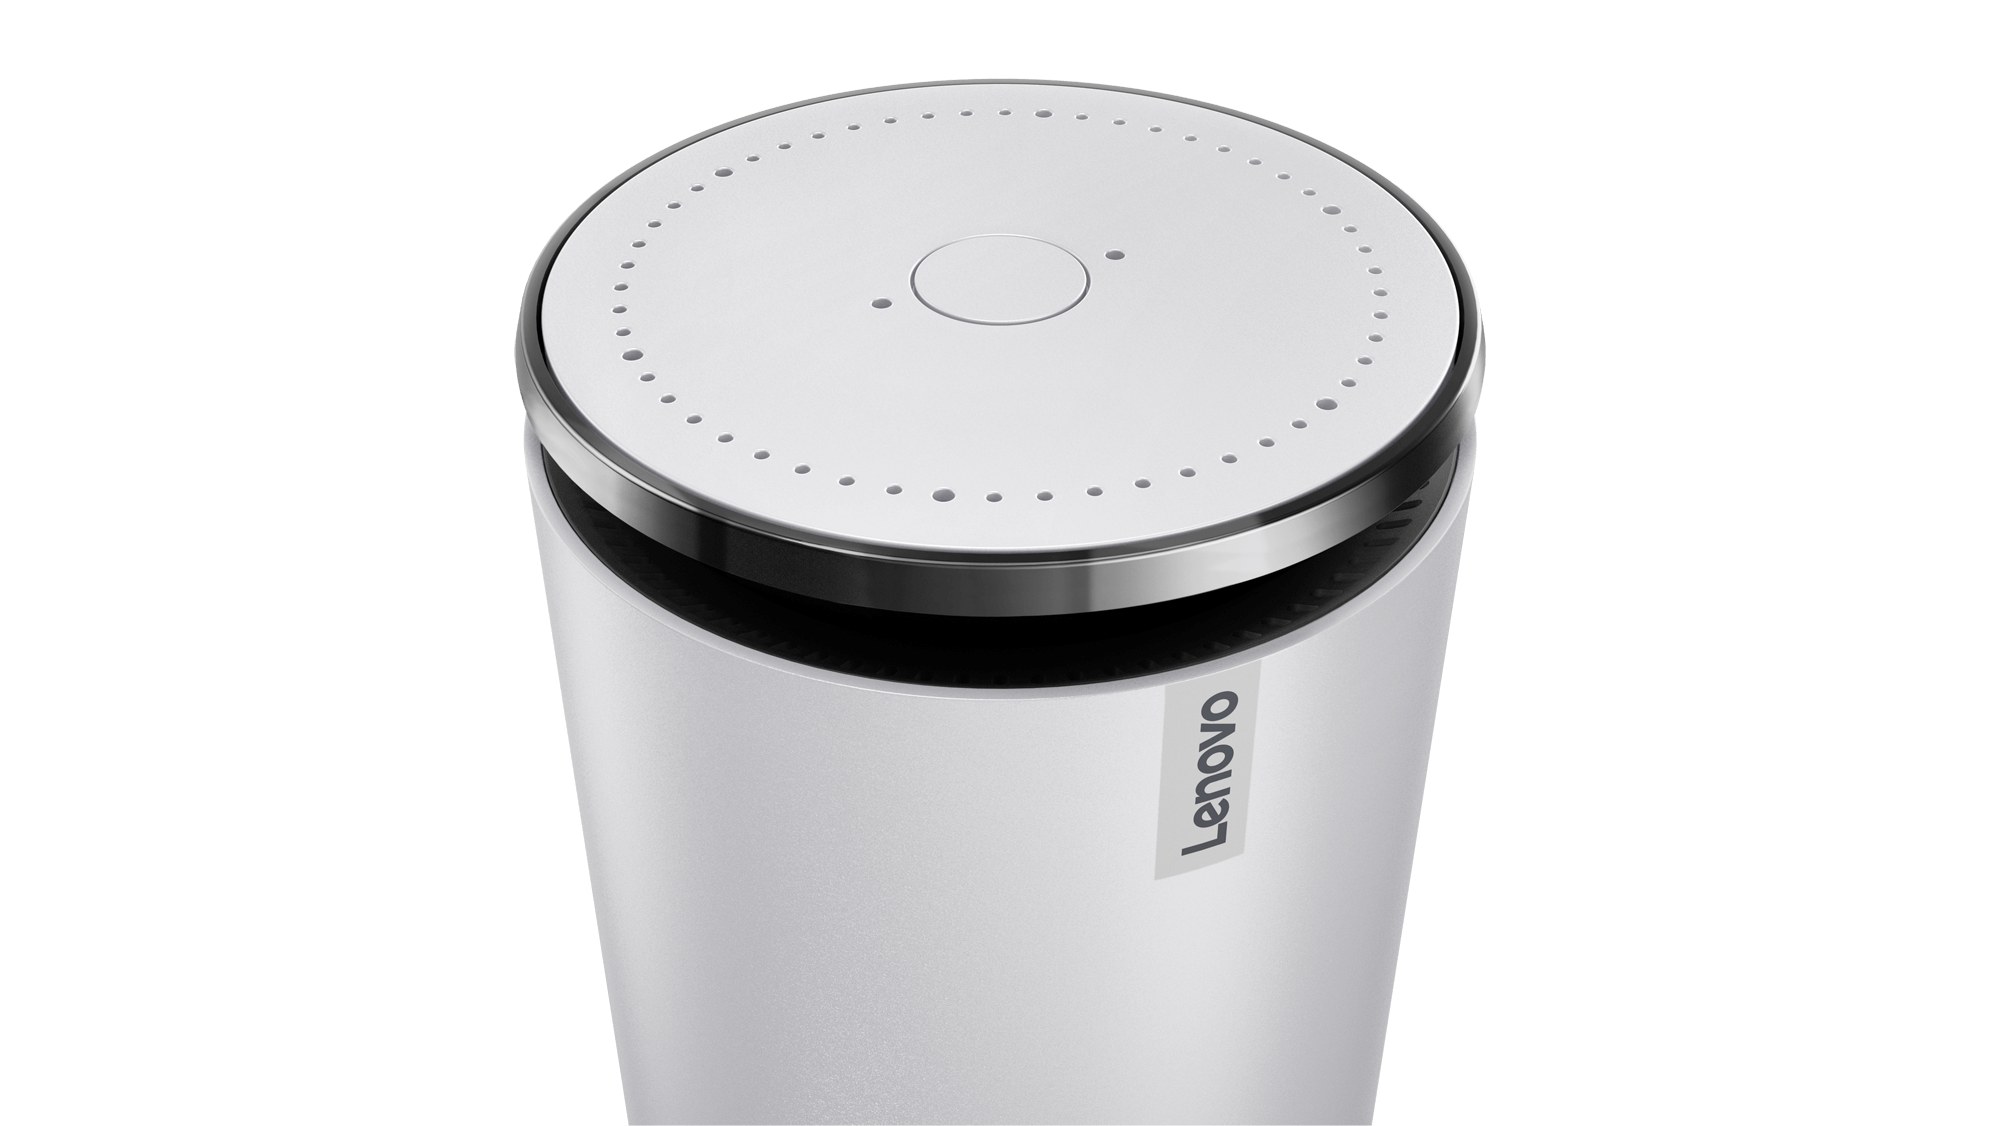 lenovo-smart-assistant-with-8-far-field-mics-in-light-gray